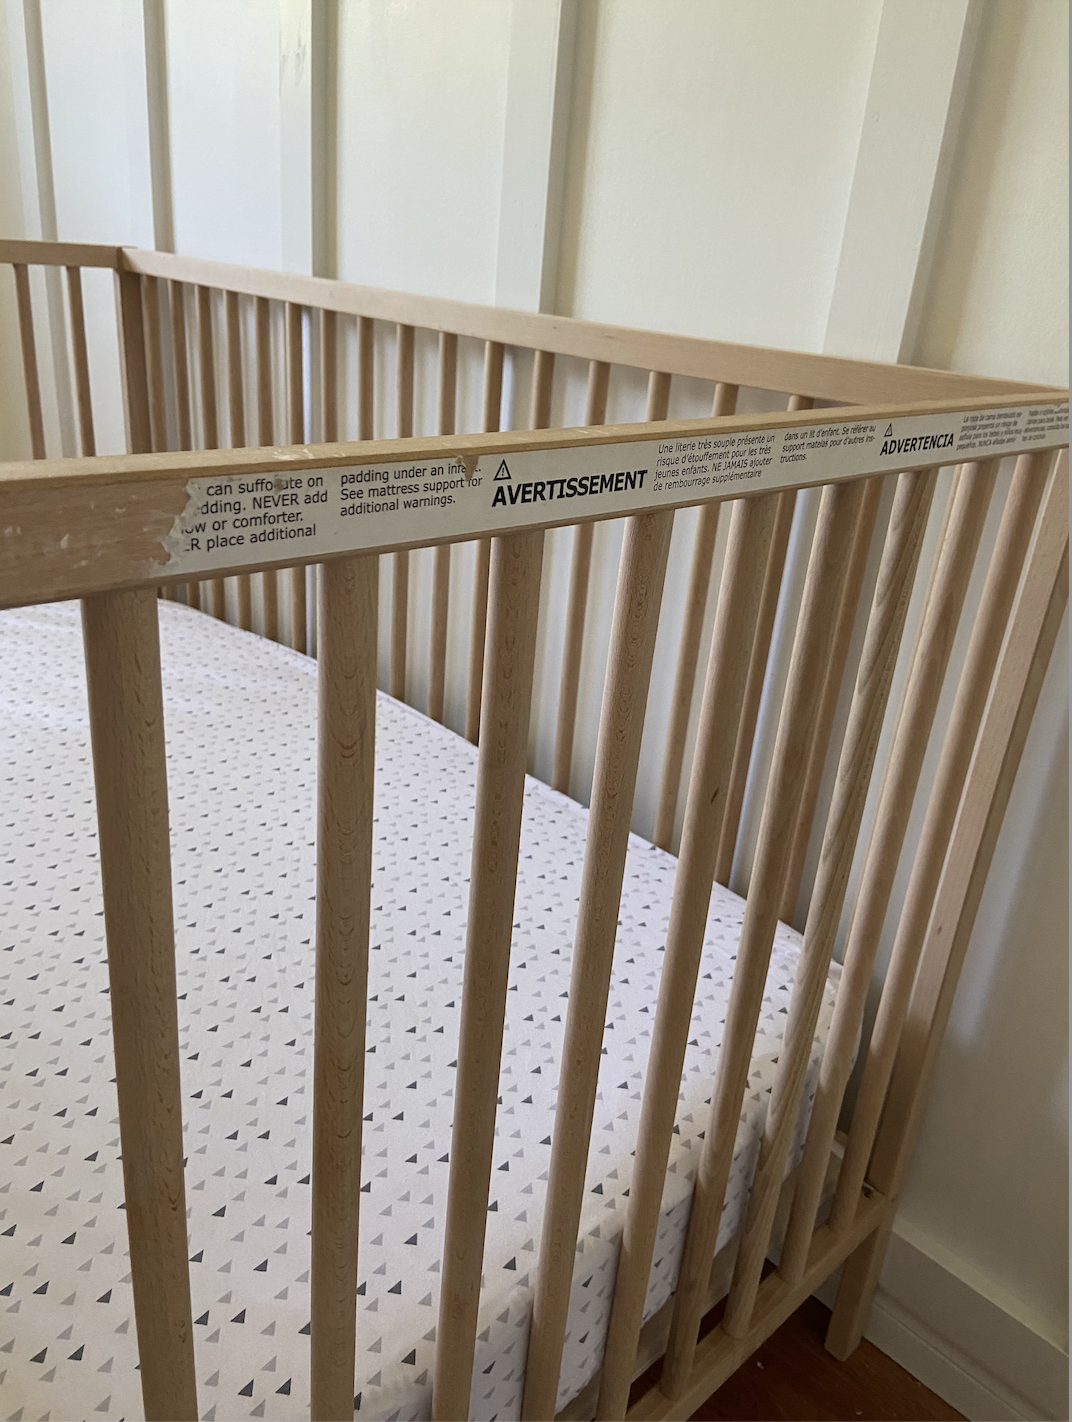 How to Remove the Warning Label off the Ikea Crib; simple tricks to remove the large sticker on the side of the SNIGLAR ikea crib